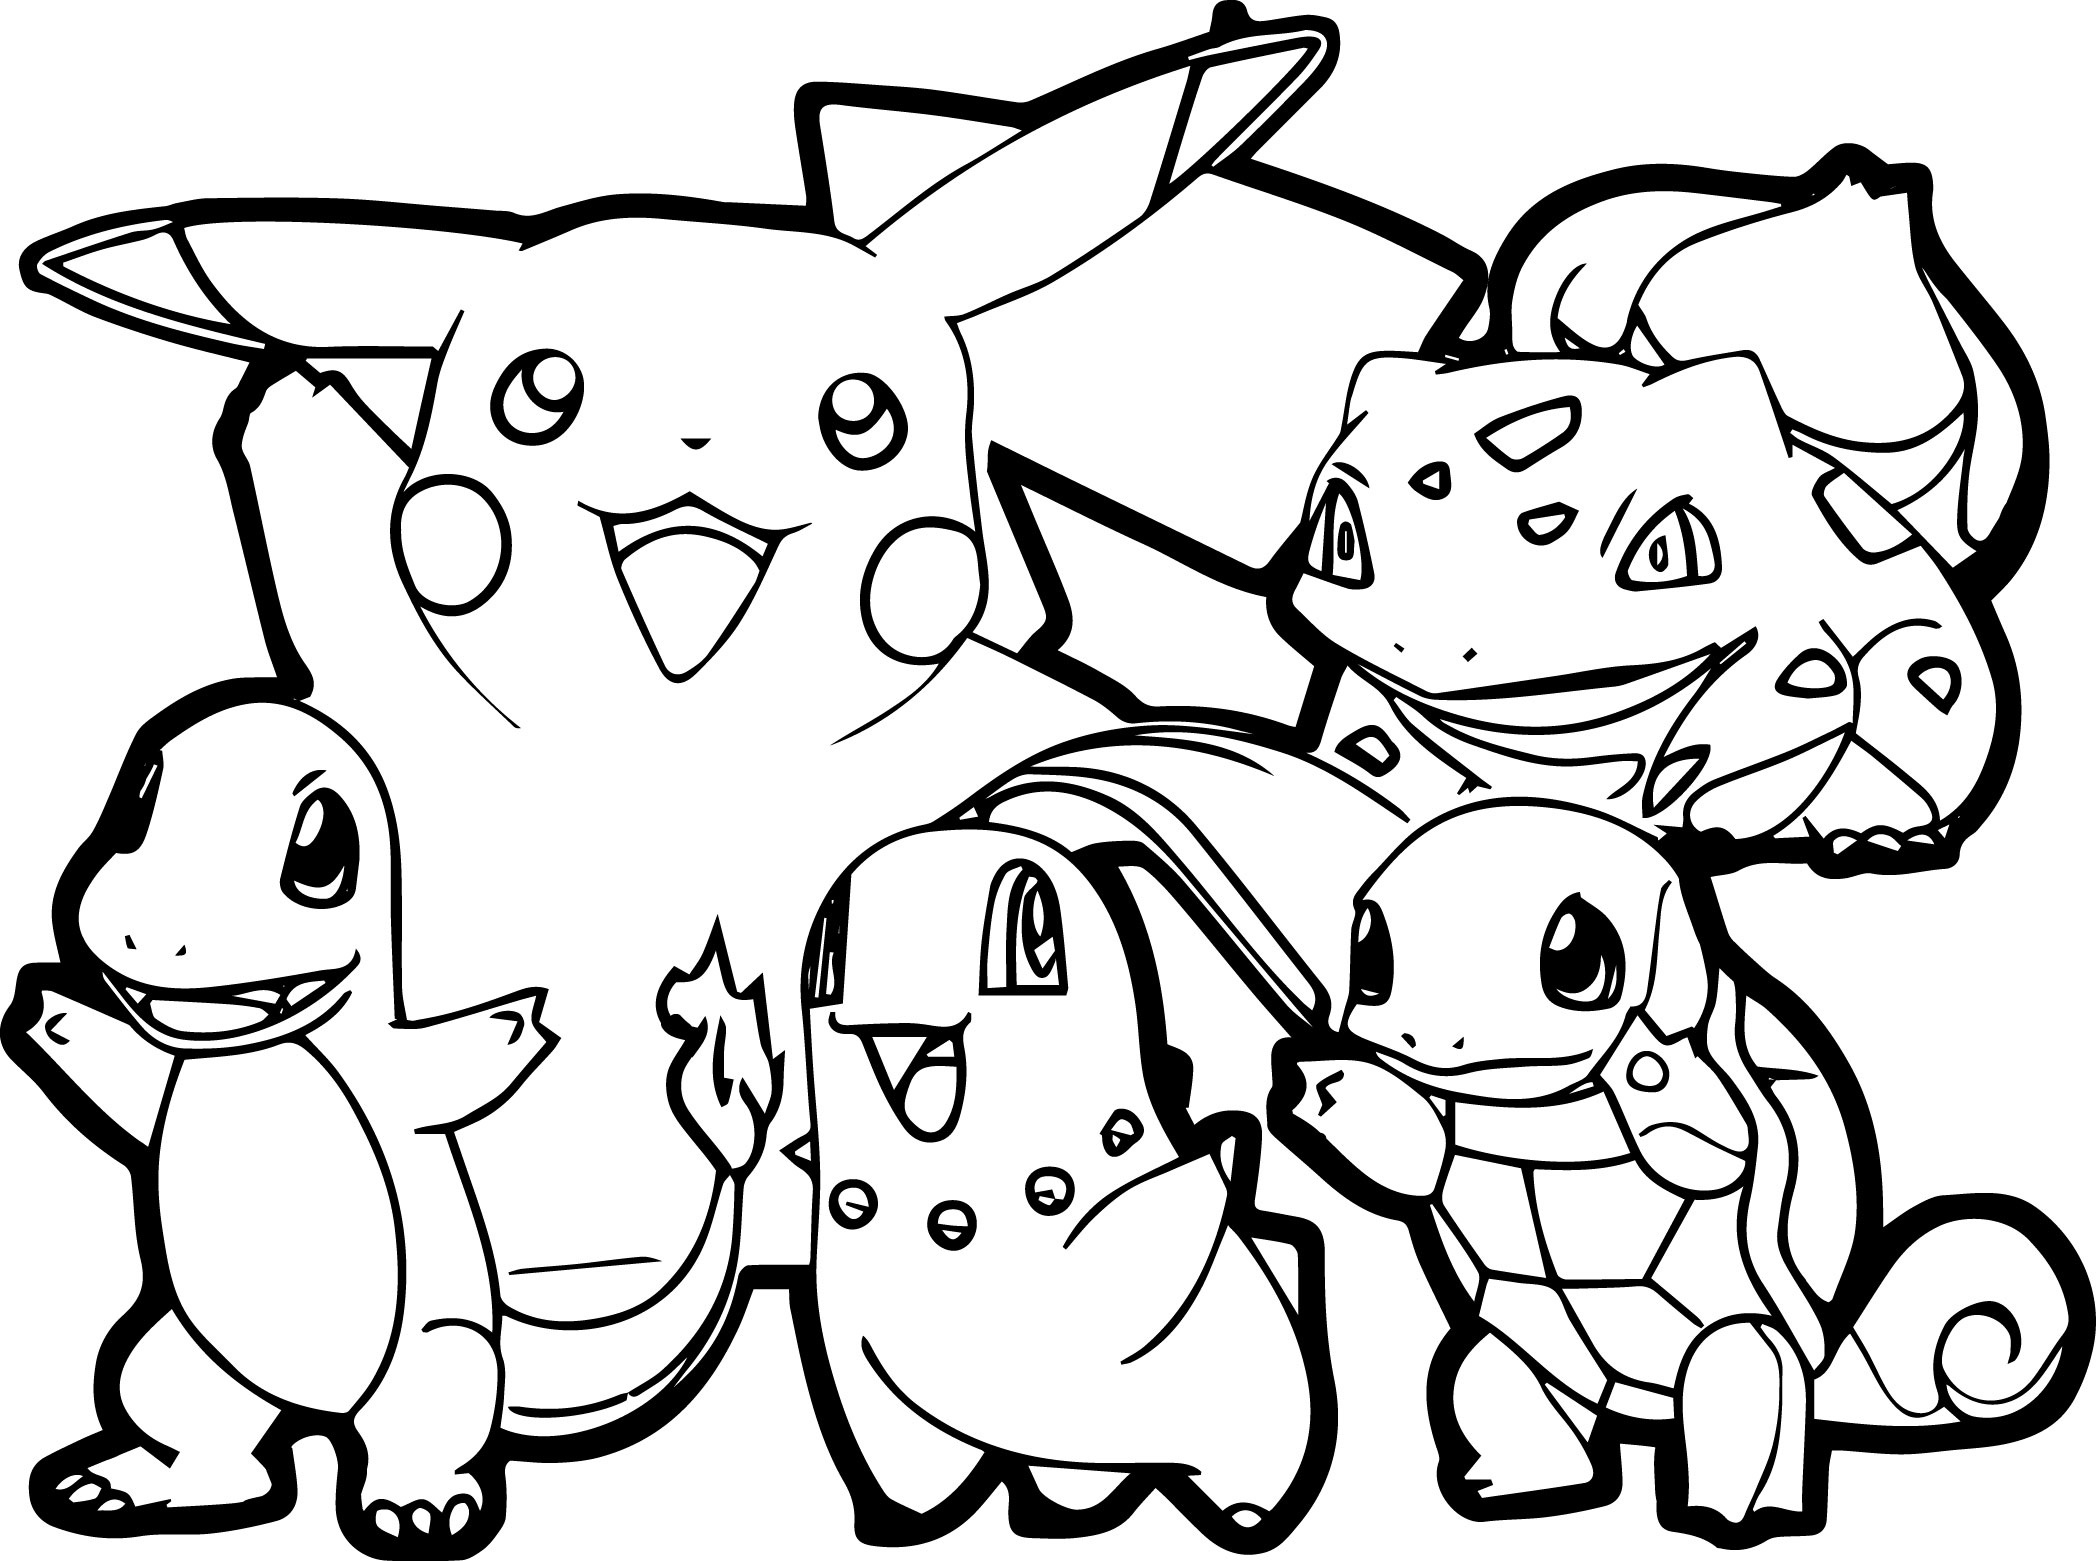 Pokemon For Children - All Pokemon Coloring Pages Kids Coloring Pages - Free Printable Pokemon Coloring Pages